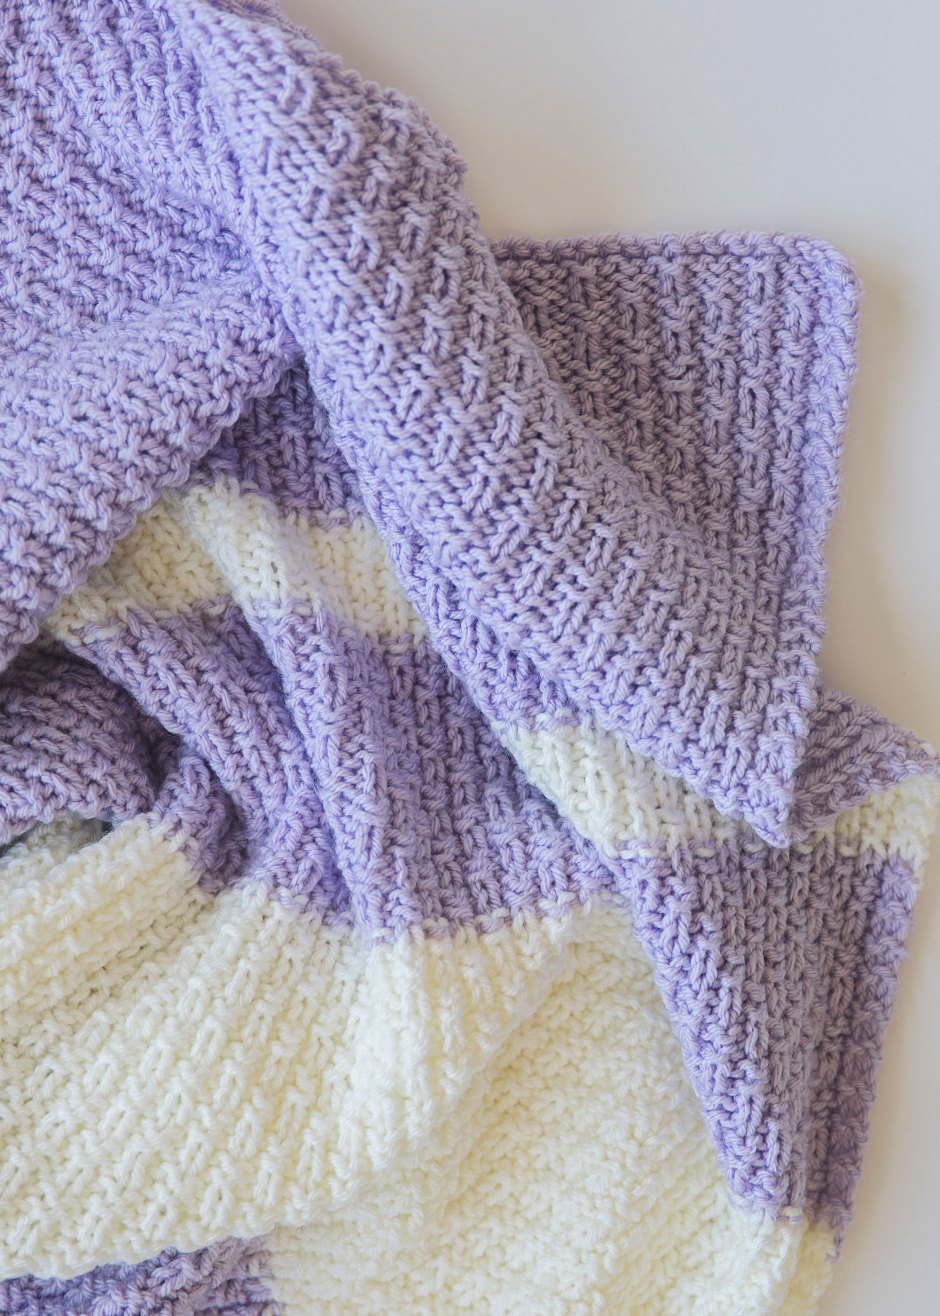 Easy Knitting Blanket Patterns : Easy Knit Baby Blanket Pattern - Leelee KnitsLeelee Knits